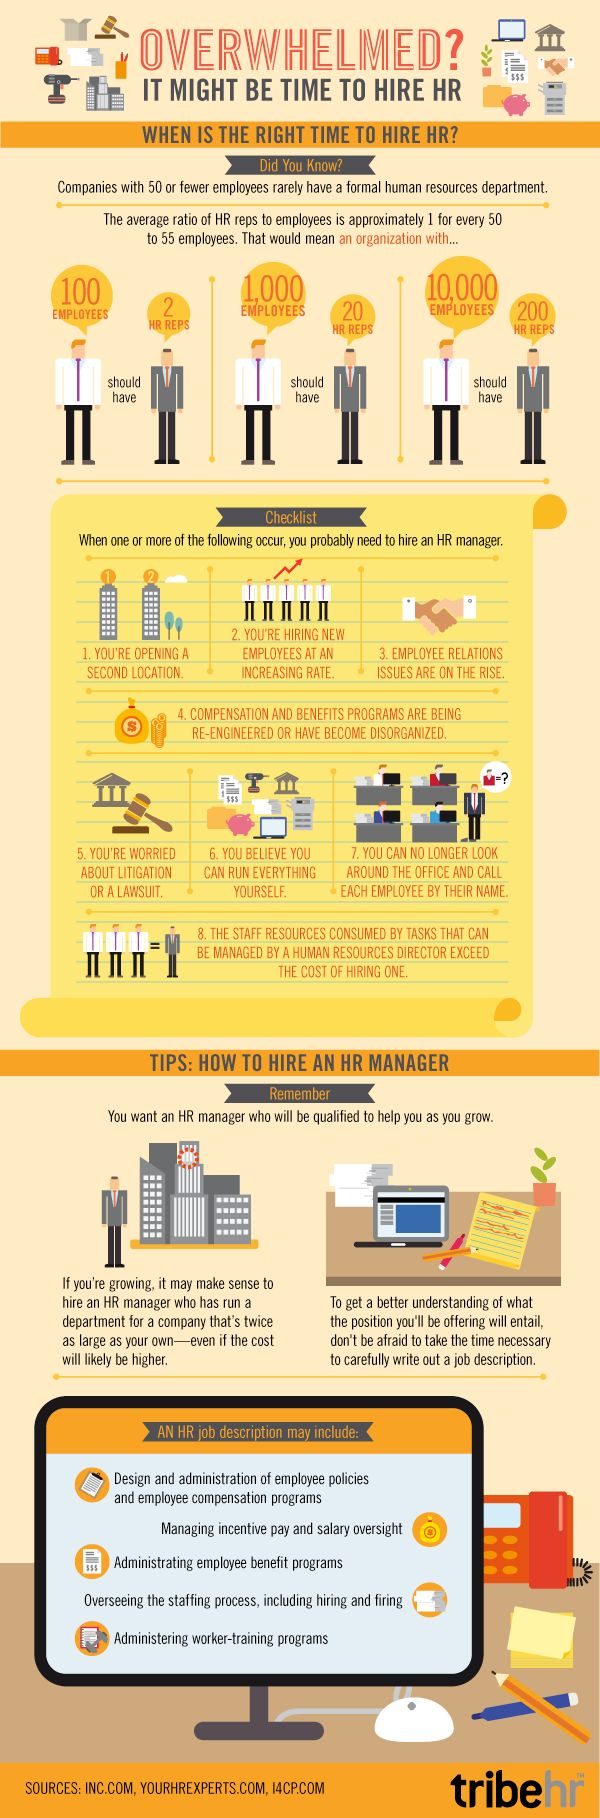 It might be time to hire HR - Another infographic we have on the wall of our office. Just one more way in which BirdDog can help you - we have HR pros in our office who adore helping you in your hiring process.